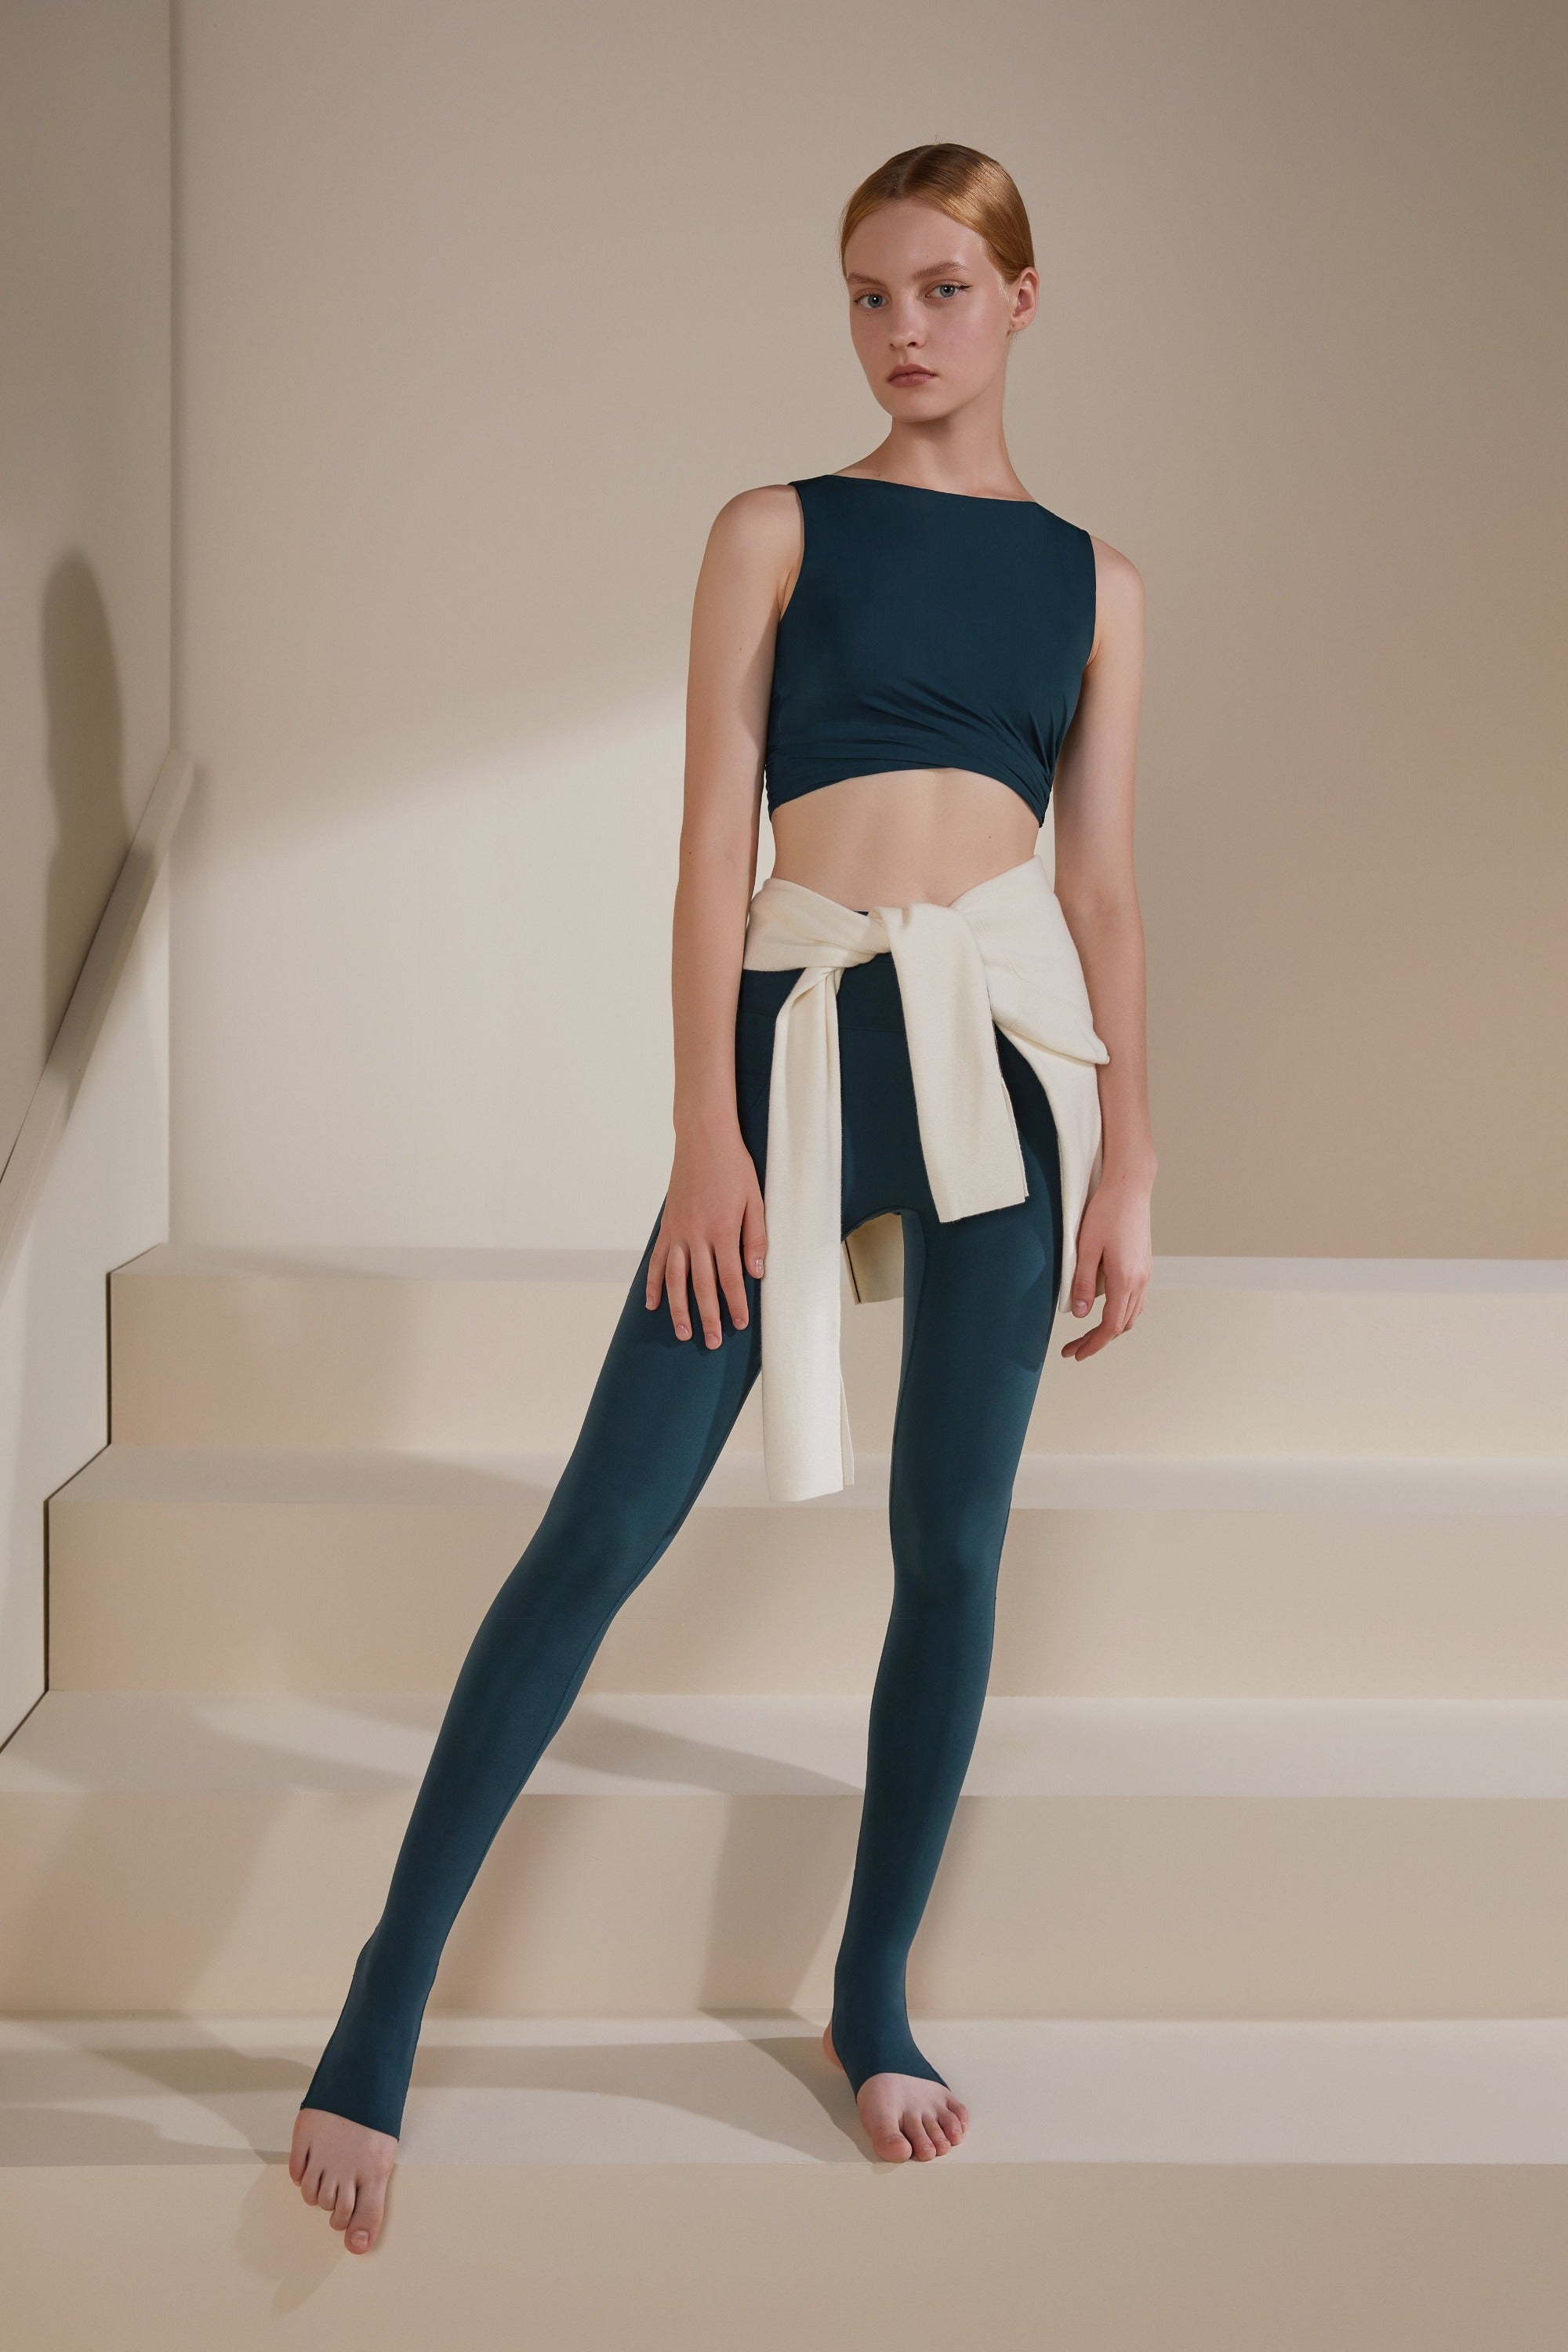 NEIWAI ACITVE · Ballet  Stirrup Leggings in Serenity Blue